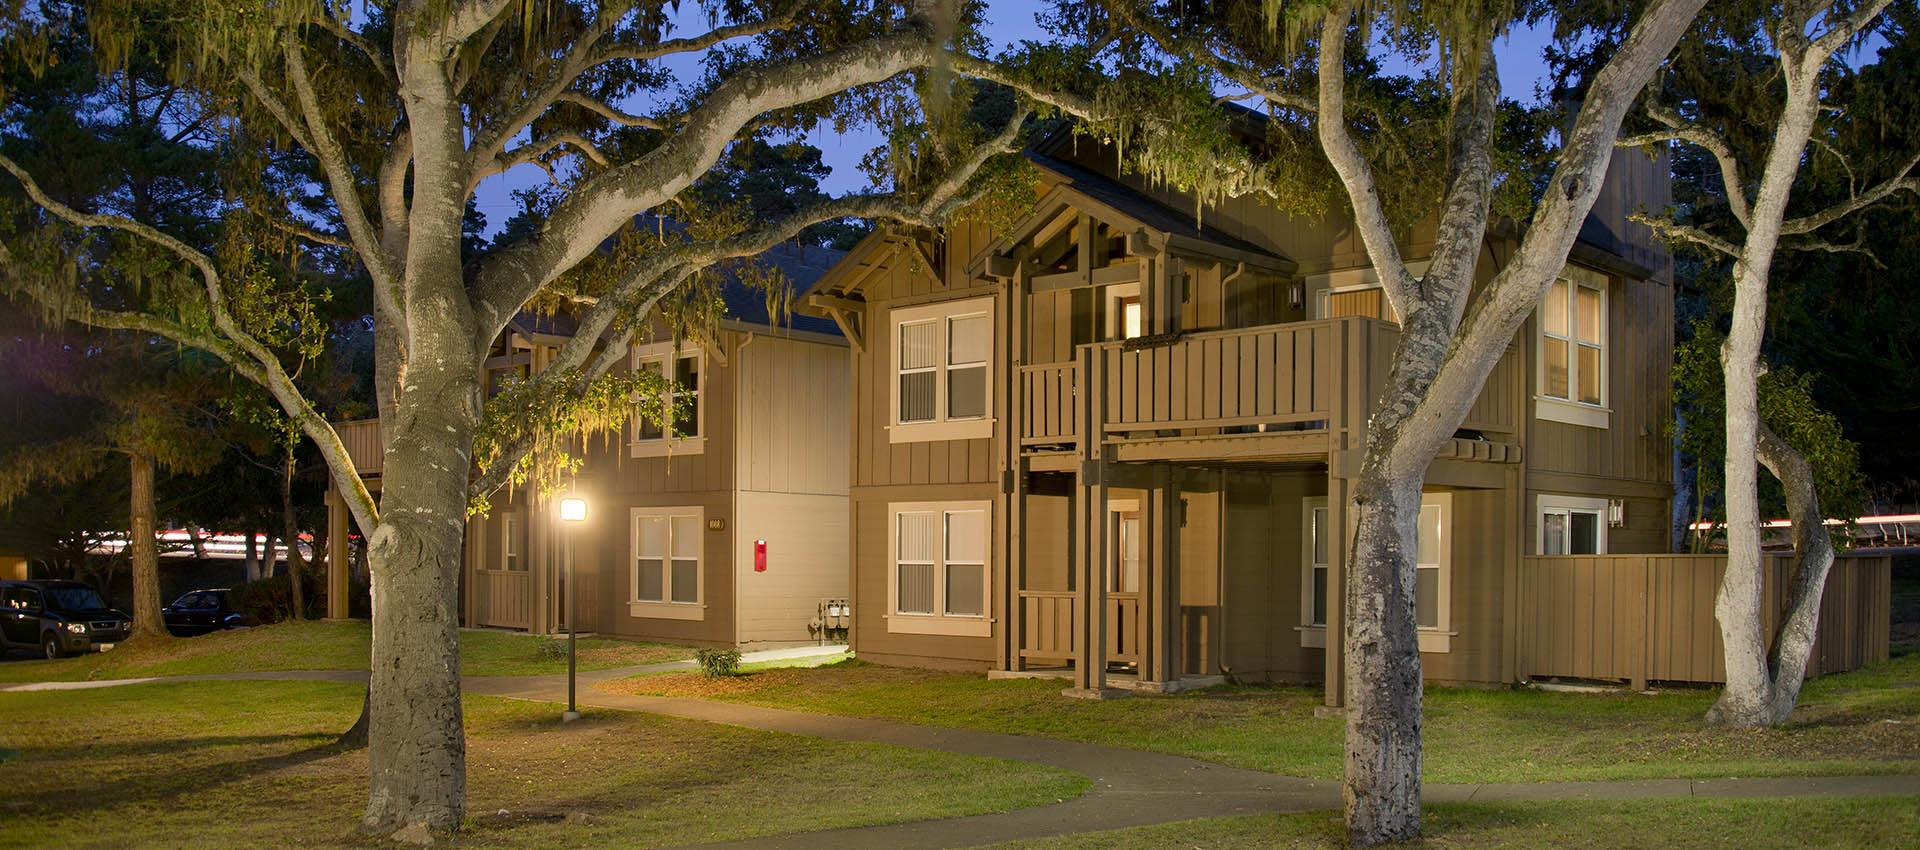 Mature Grounds at Seventeen Mile Drive Village Apartment Homes in Pacific Grove